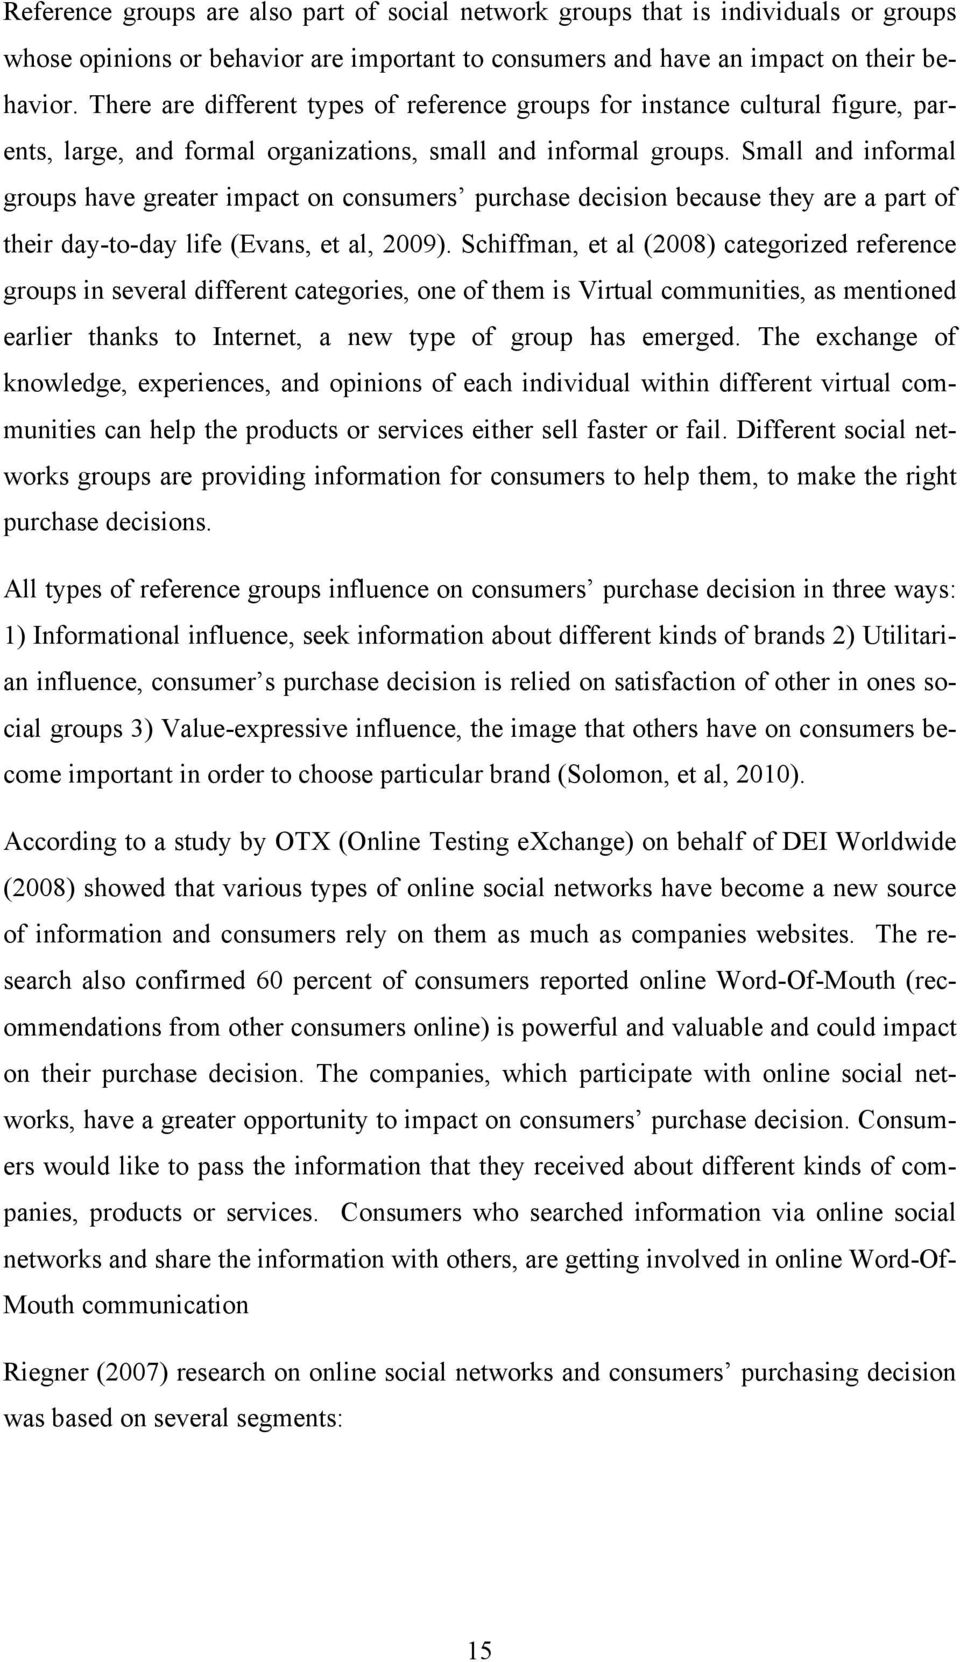 Small and informal groups have greater impact on consumers purchase decision because they are a part of their day-to-day life (Evans, et al, 2009).